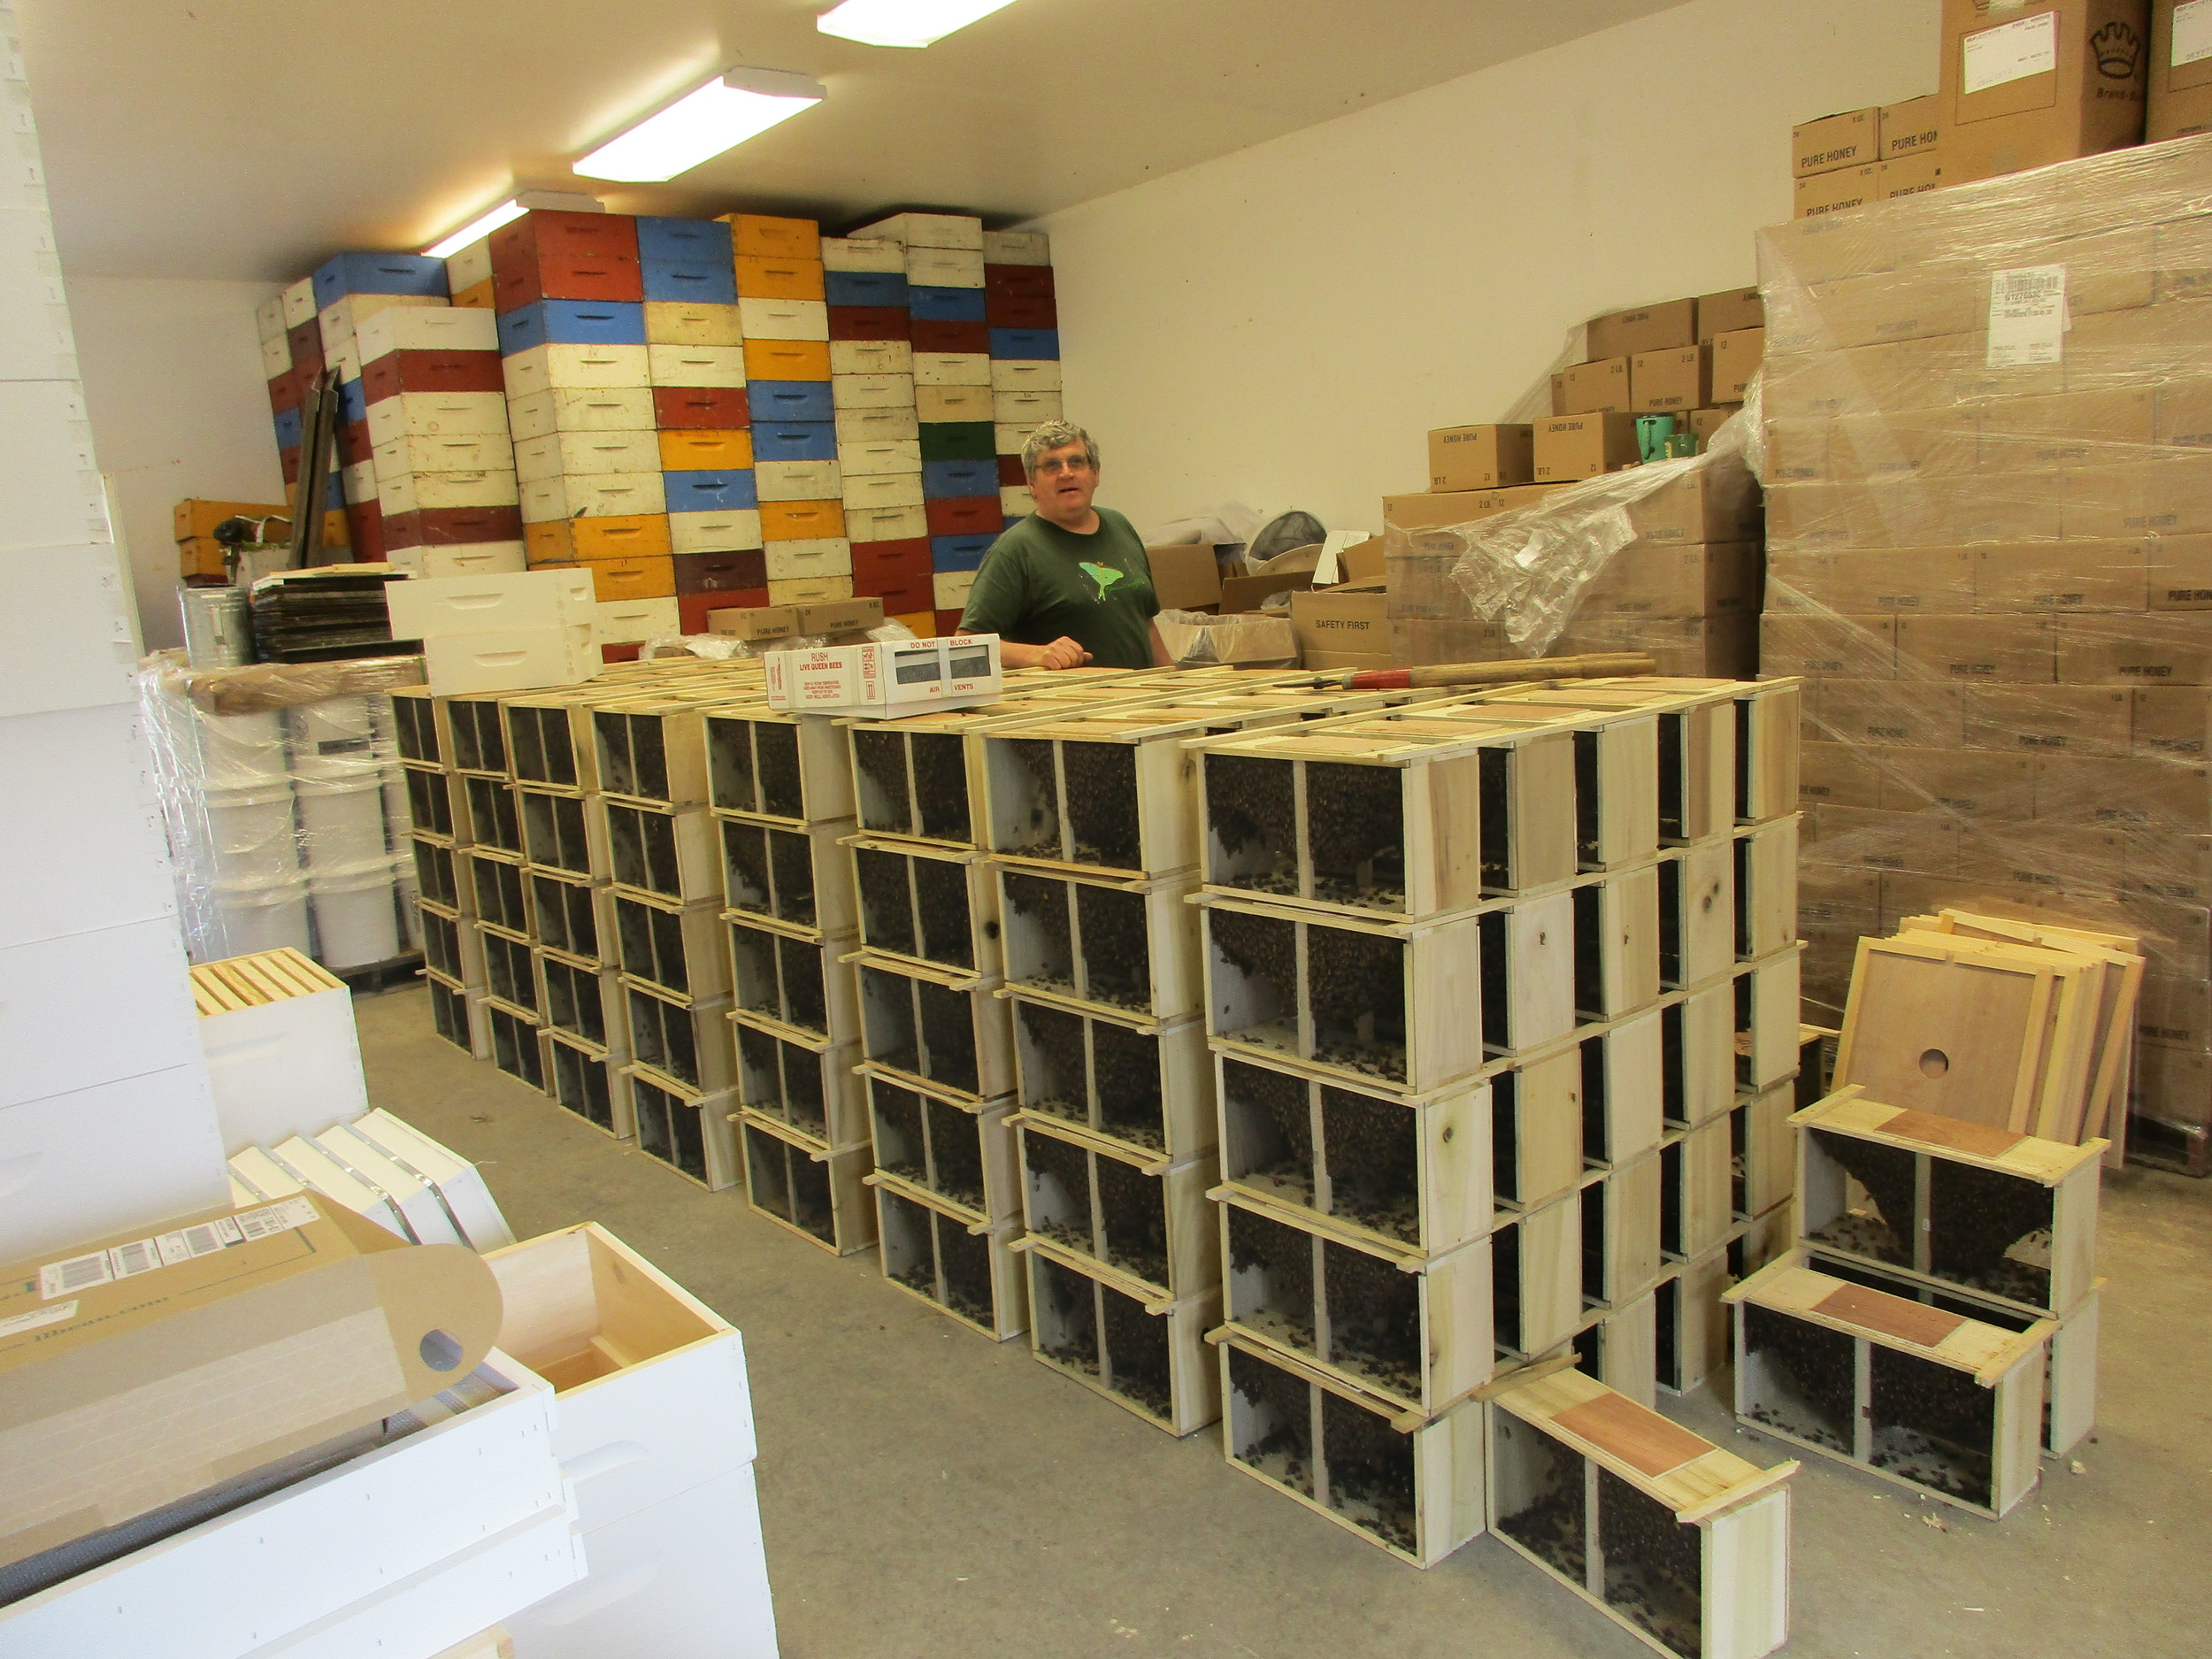 """Adam Fuller, standing behind his stack of bee packages that are going out to customers that day. Each one of these boxes is a """"package"""", complete with one queen and several worker bees, all you need to start a new bee colony in your hive(s) at home. Five boxes deep, 5 tall, and 8 stacks, plus 4 on the floor: he had 204 left at that point! Colorful boxes against the back wall are """"honey supers"""". You add these to the top of your hive to encourage the bees to store their honey there, so you can then extract the honey to sell. On Adam's right, mostly wrapped up in plastic are crates of A&Z Apiary honey. I see A&Z honey in stores all over CT."""